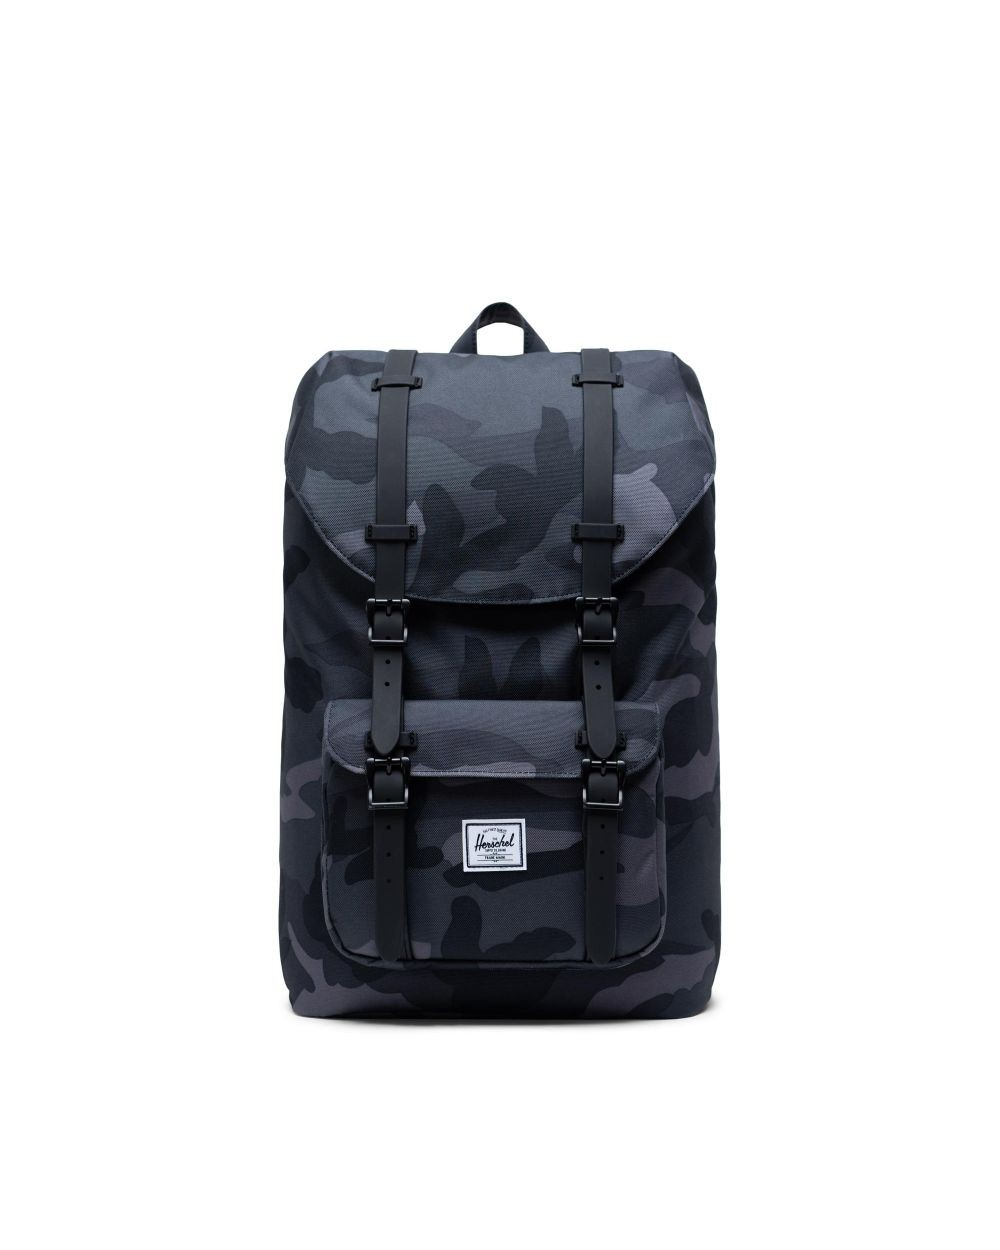 SAC À DOS LITTLE AMERICA MID VOLUME NIGHT CAMO HERSCHEL